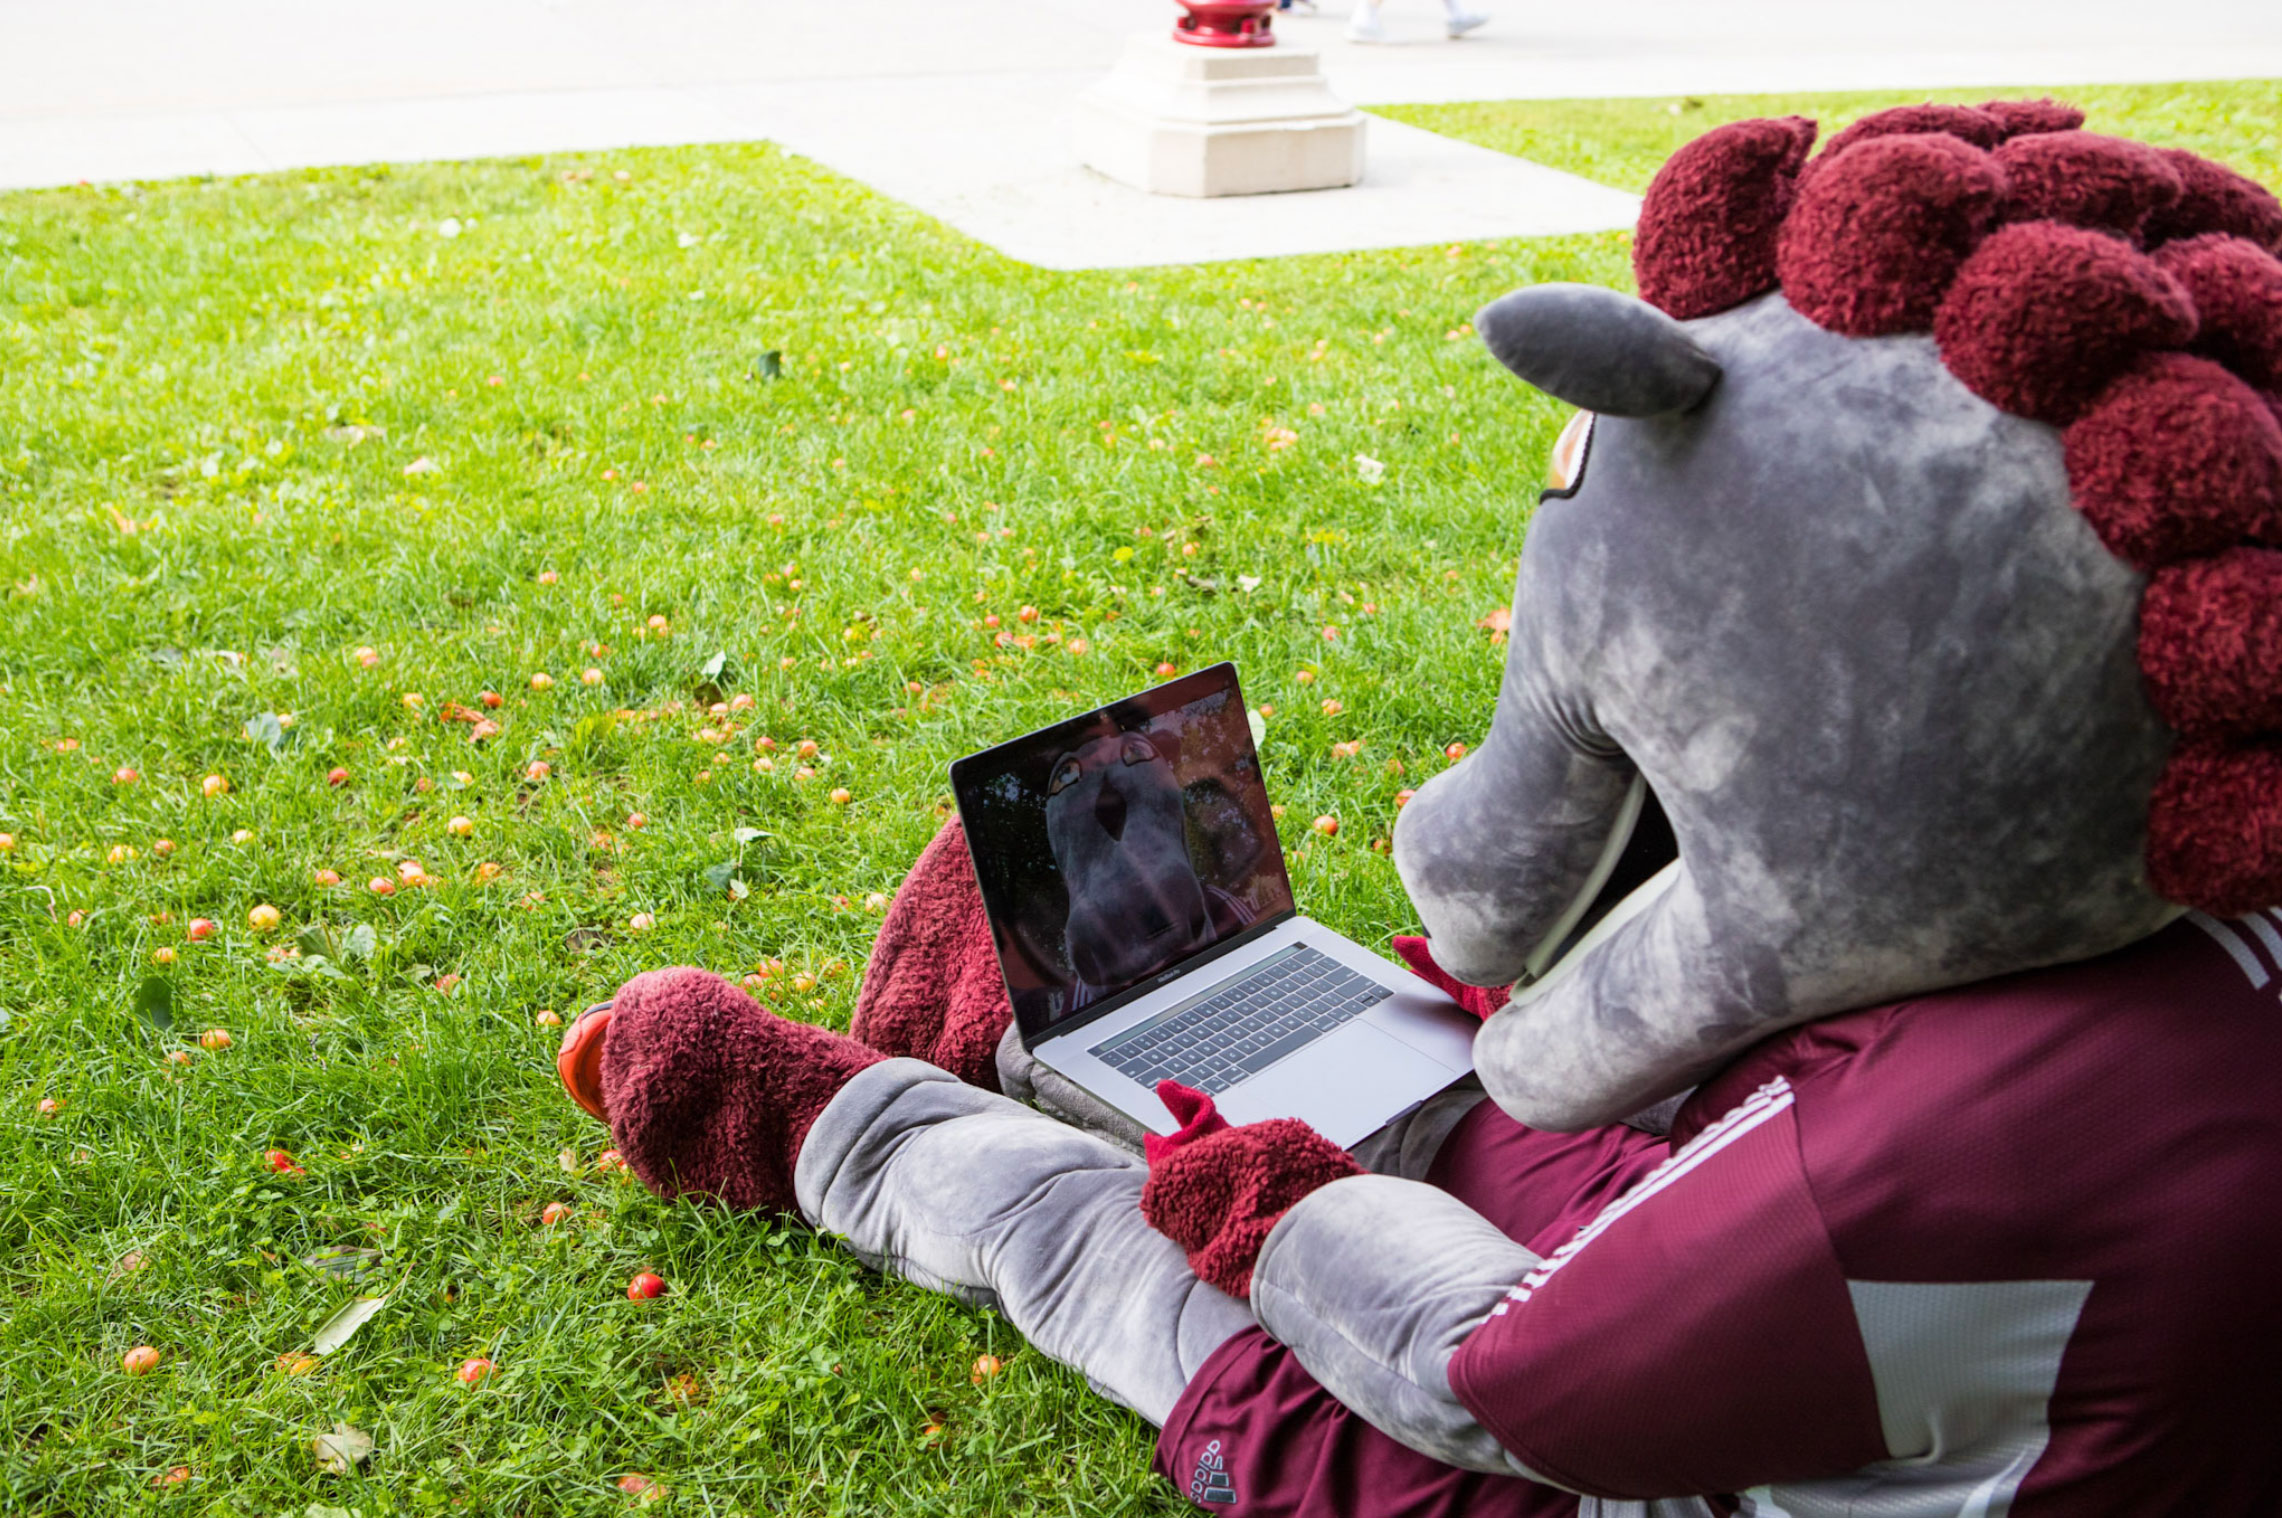 The GeeGee mascot consults the new website on a computer